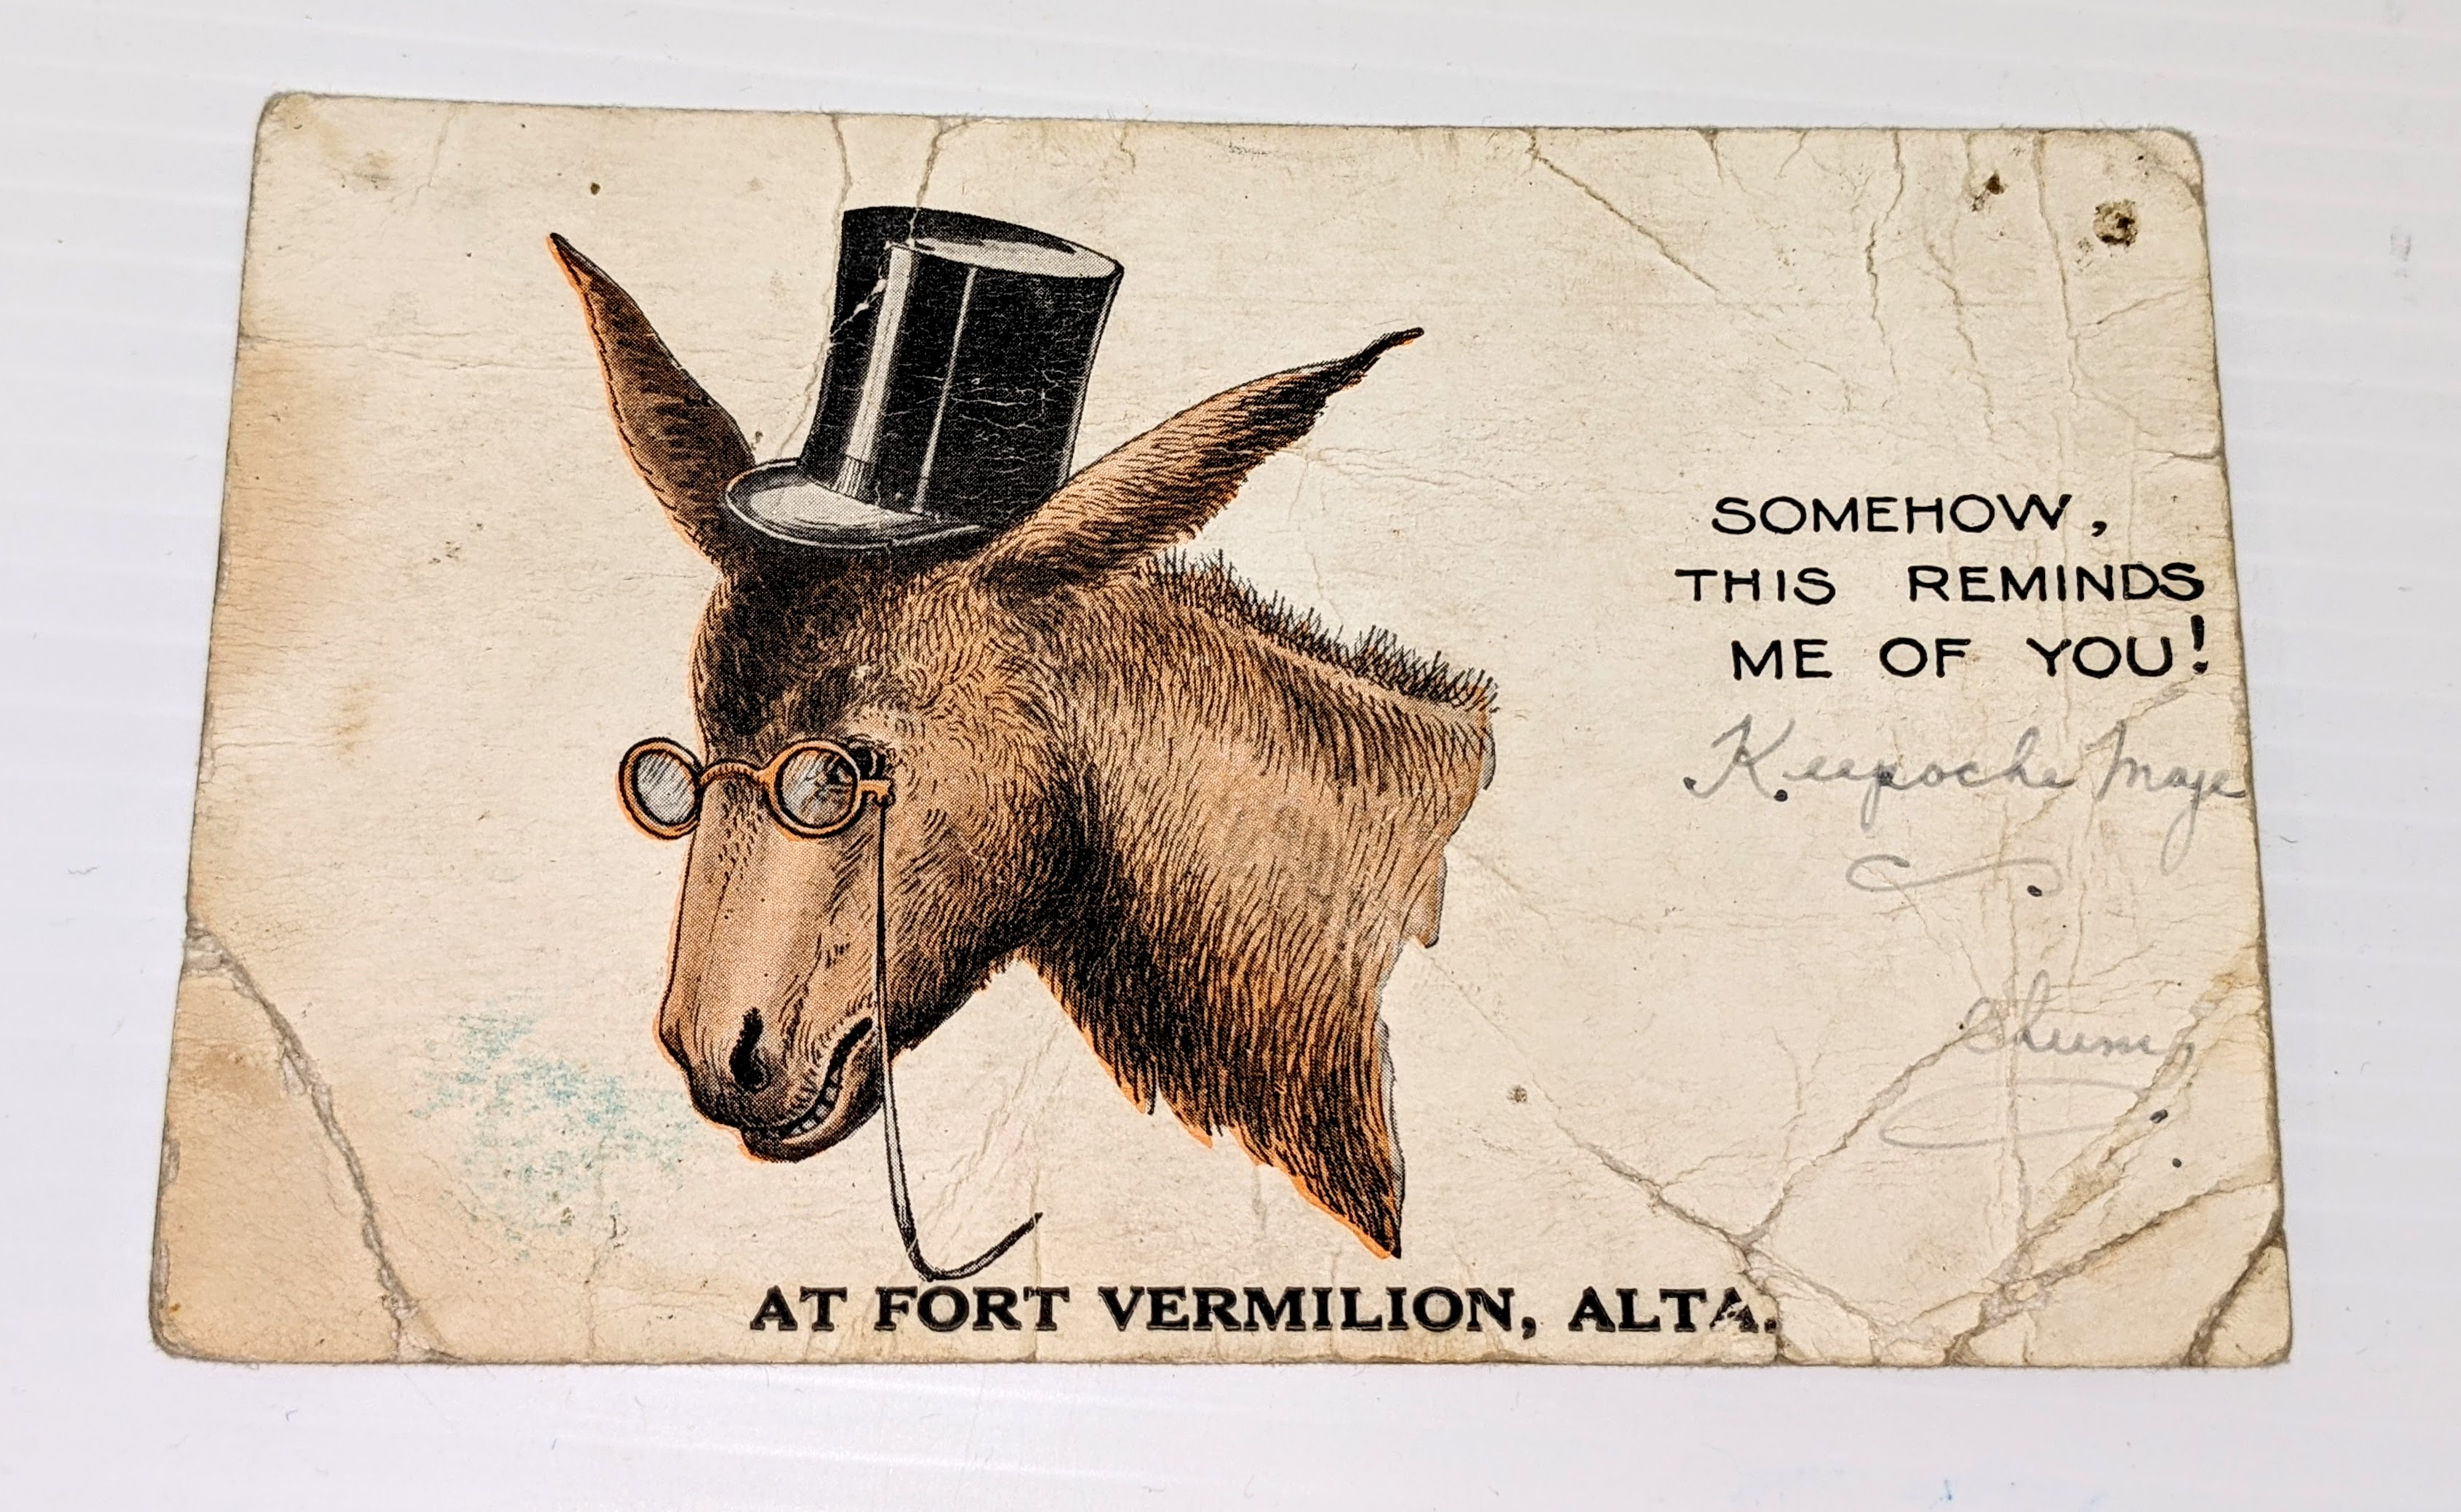 """This is a postcard for Fort Vermilion from 1934. Made in the United States, the brand is """"Donkey Comics"""" and who made generic postcards that any town or locale could add their title too. Considering the age of the post card the Board of Trade likely put the """"At Fort Vermilion"""" stamp on it. The card is not signed nor has been sent. You'll notice on the right hand side a few words in cursive - we can't quite understand them so if you can please let us know!  16/08/2021 2001.17.01 / Mcleod, William A."""